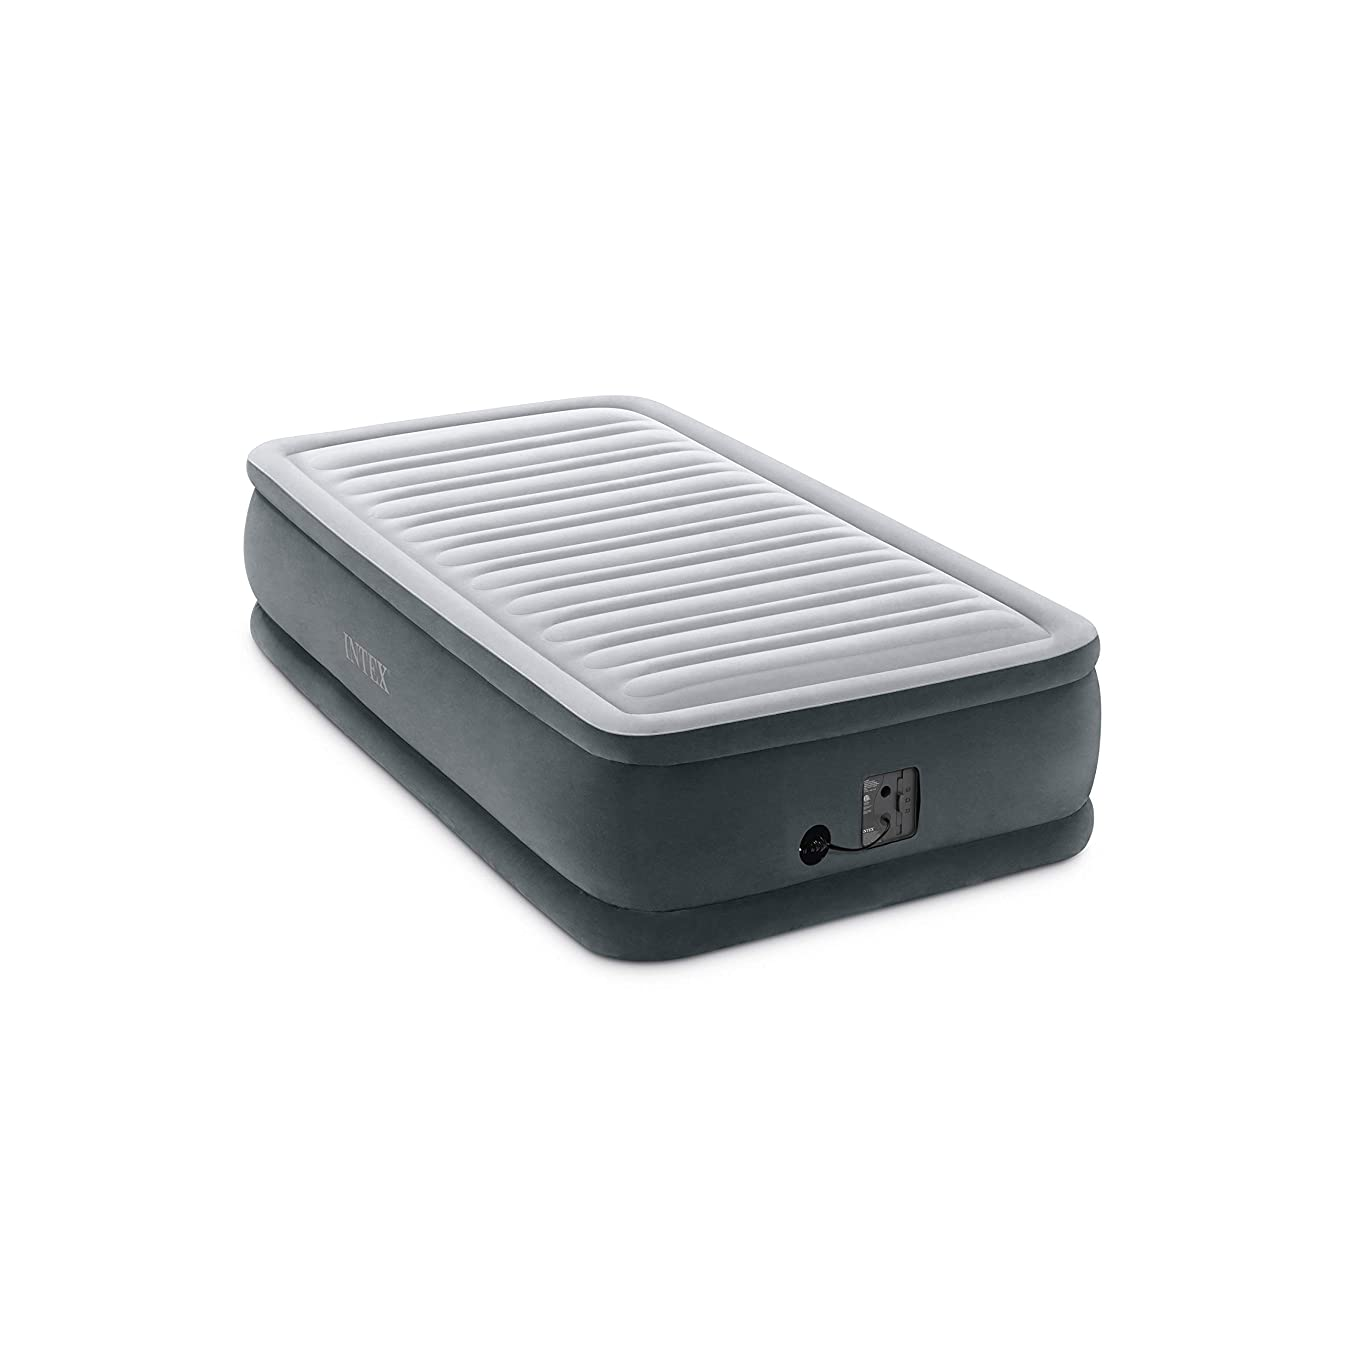 Intex Comfort Plush Elevated Dura-Beam Airbed with Internal Electric Pump, Bed Height 18